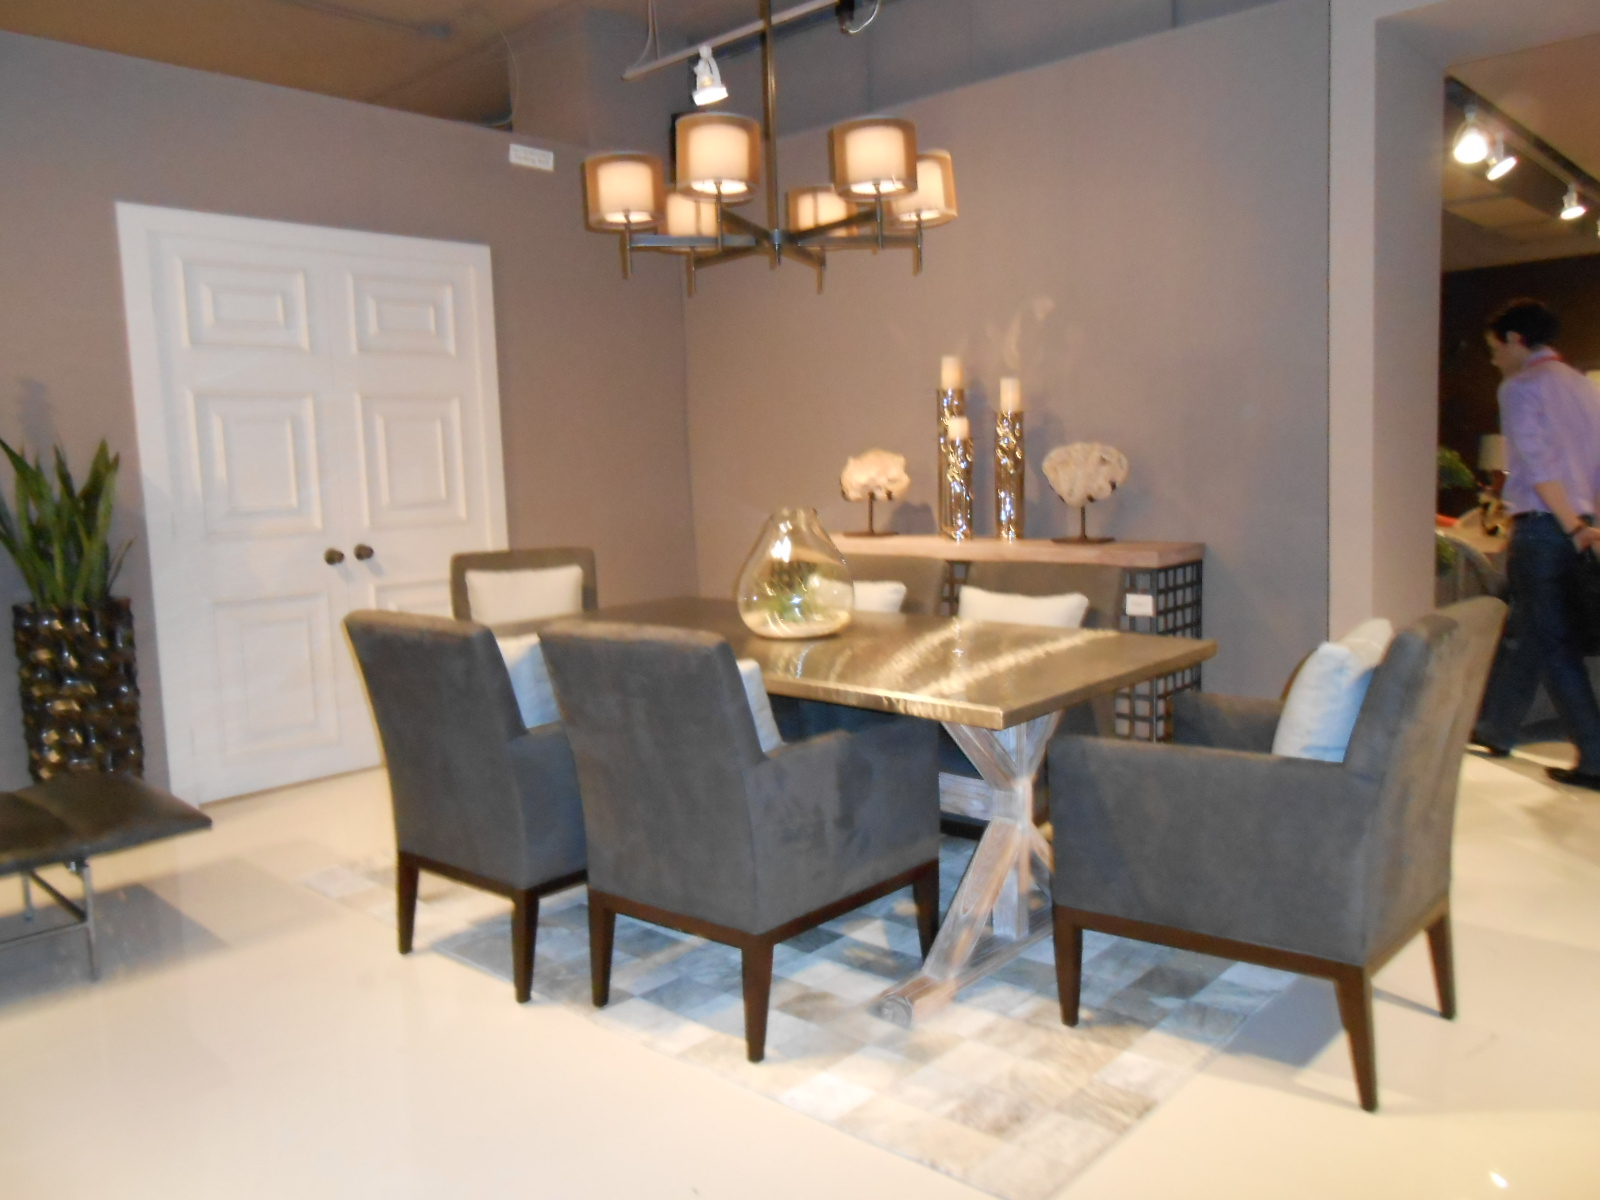 temptations from high point market stainless steel kitchen table Twilight Bay dining from Lexington